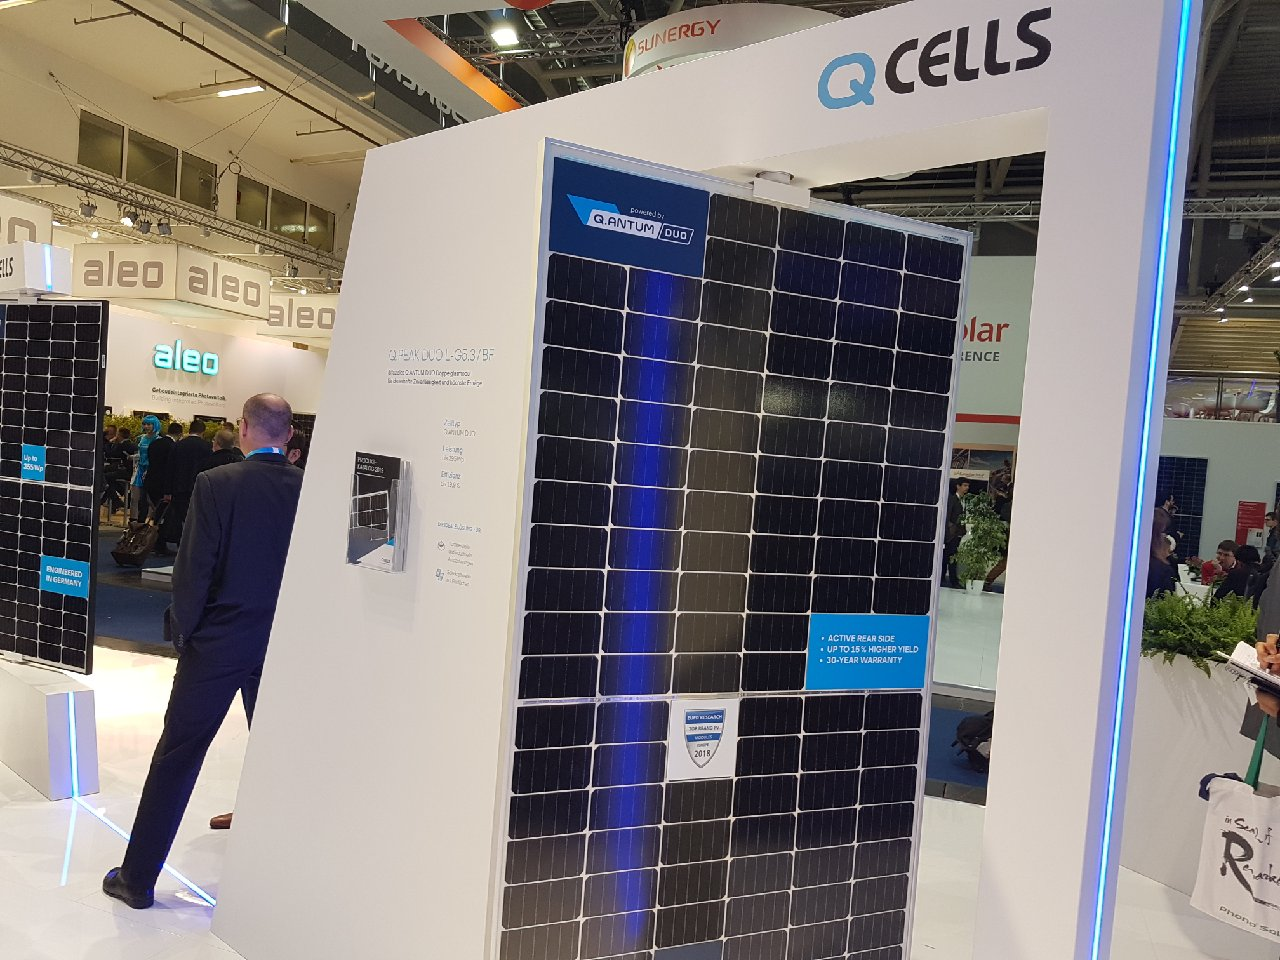 """Max Schurade, Director of Technical Marketing Support at Q CELLS, said: """"The energy yield increases offered by bifacial technology are an exciting opportunity for the solar industry. Q CELLS' new bifacial module – the Q.PEAK DUO L-G5.3/BF – is manufactured with double-glass and a white grid on the rear glass to help boost energy output. The bifacial effect drives an energy yield gain of up to 20%, while efficiencies on the entire module are close to 20%"""